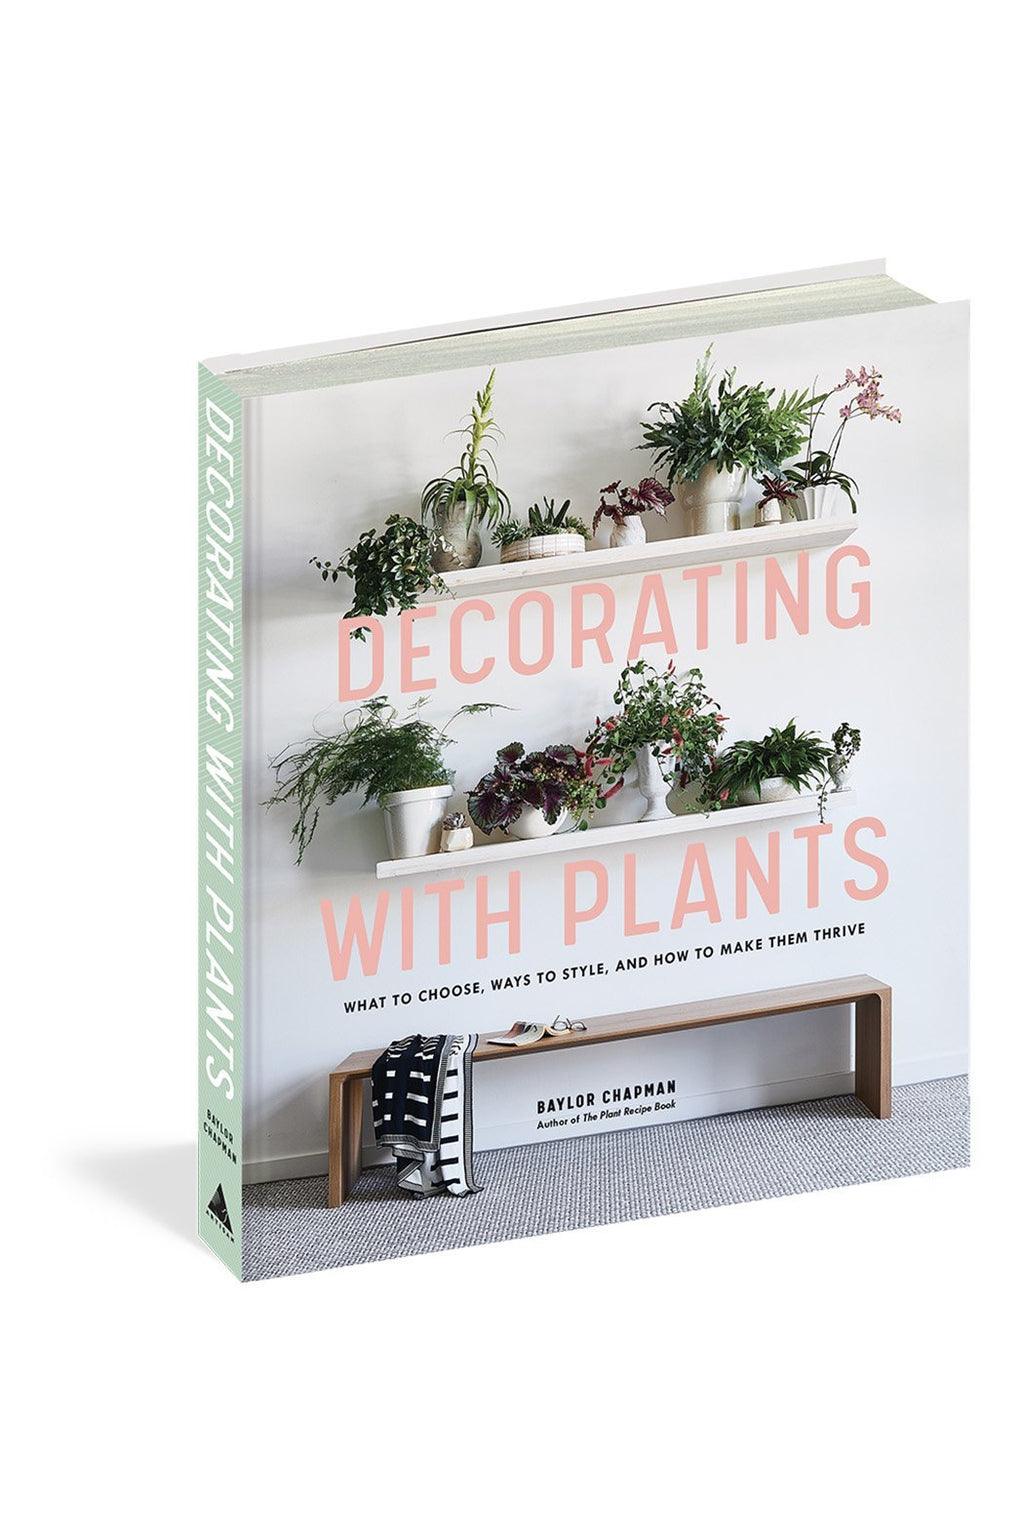 EcoVibe Style - Decorating With Plants: What to Choose, Ways to Style, and How to Make Them Thrive By Baylor Chapman, Book